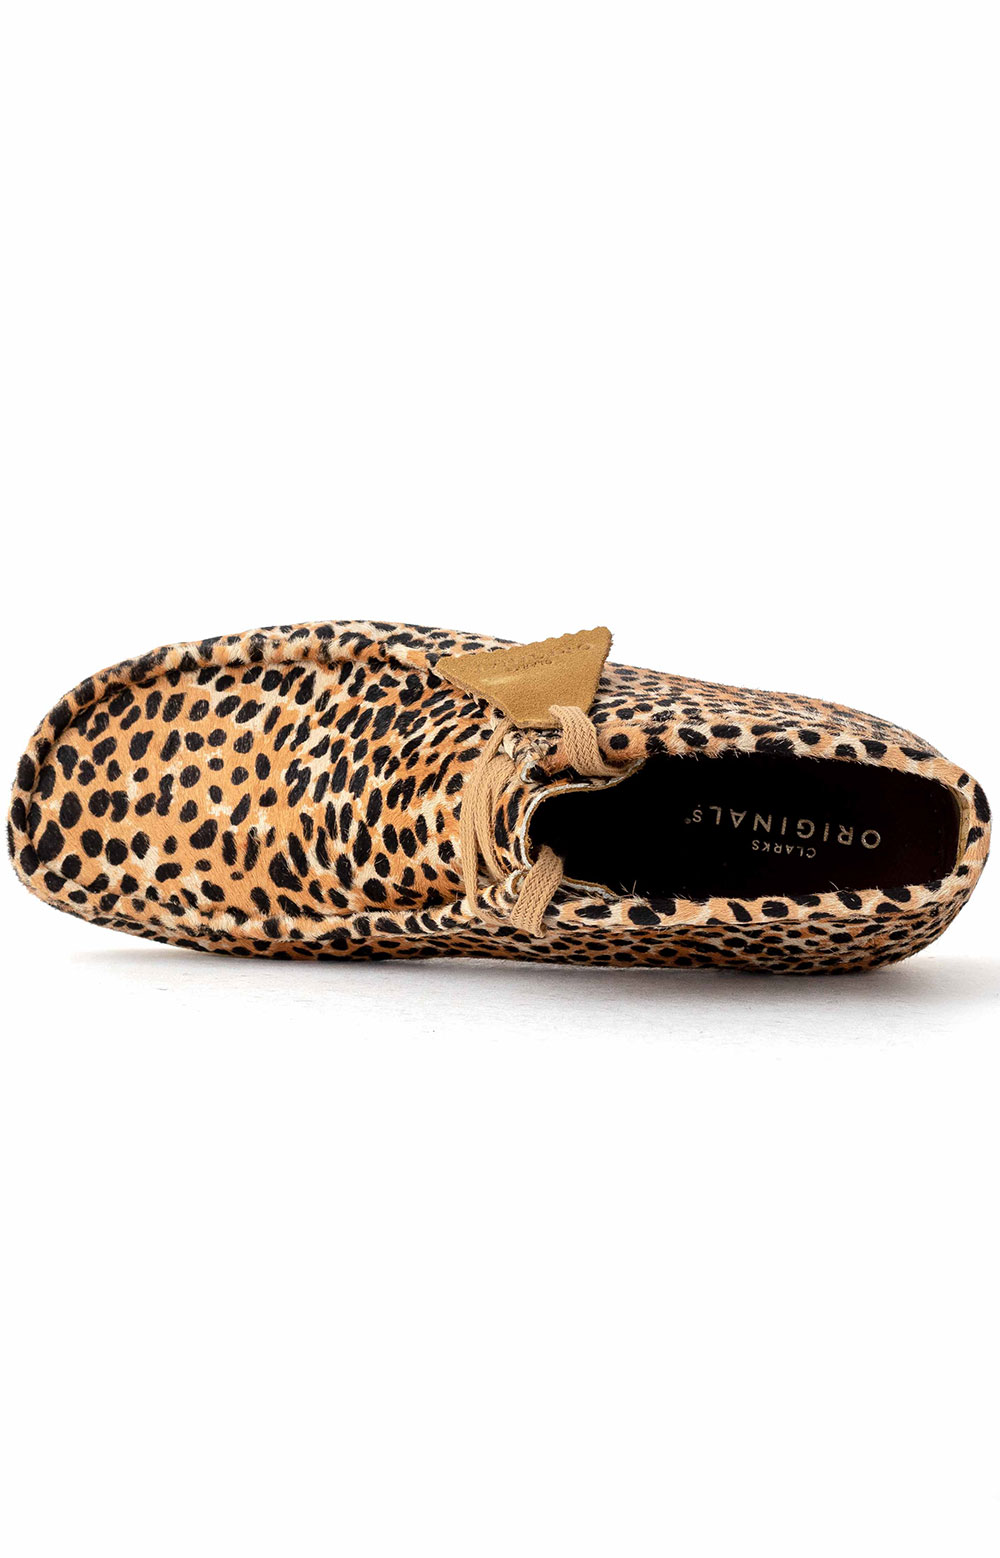 (26146756) Wallabee Boot - Brown Animal Print 2